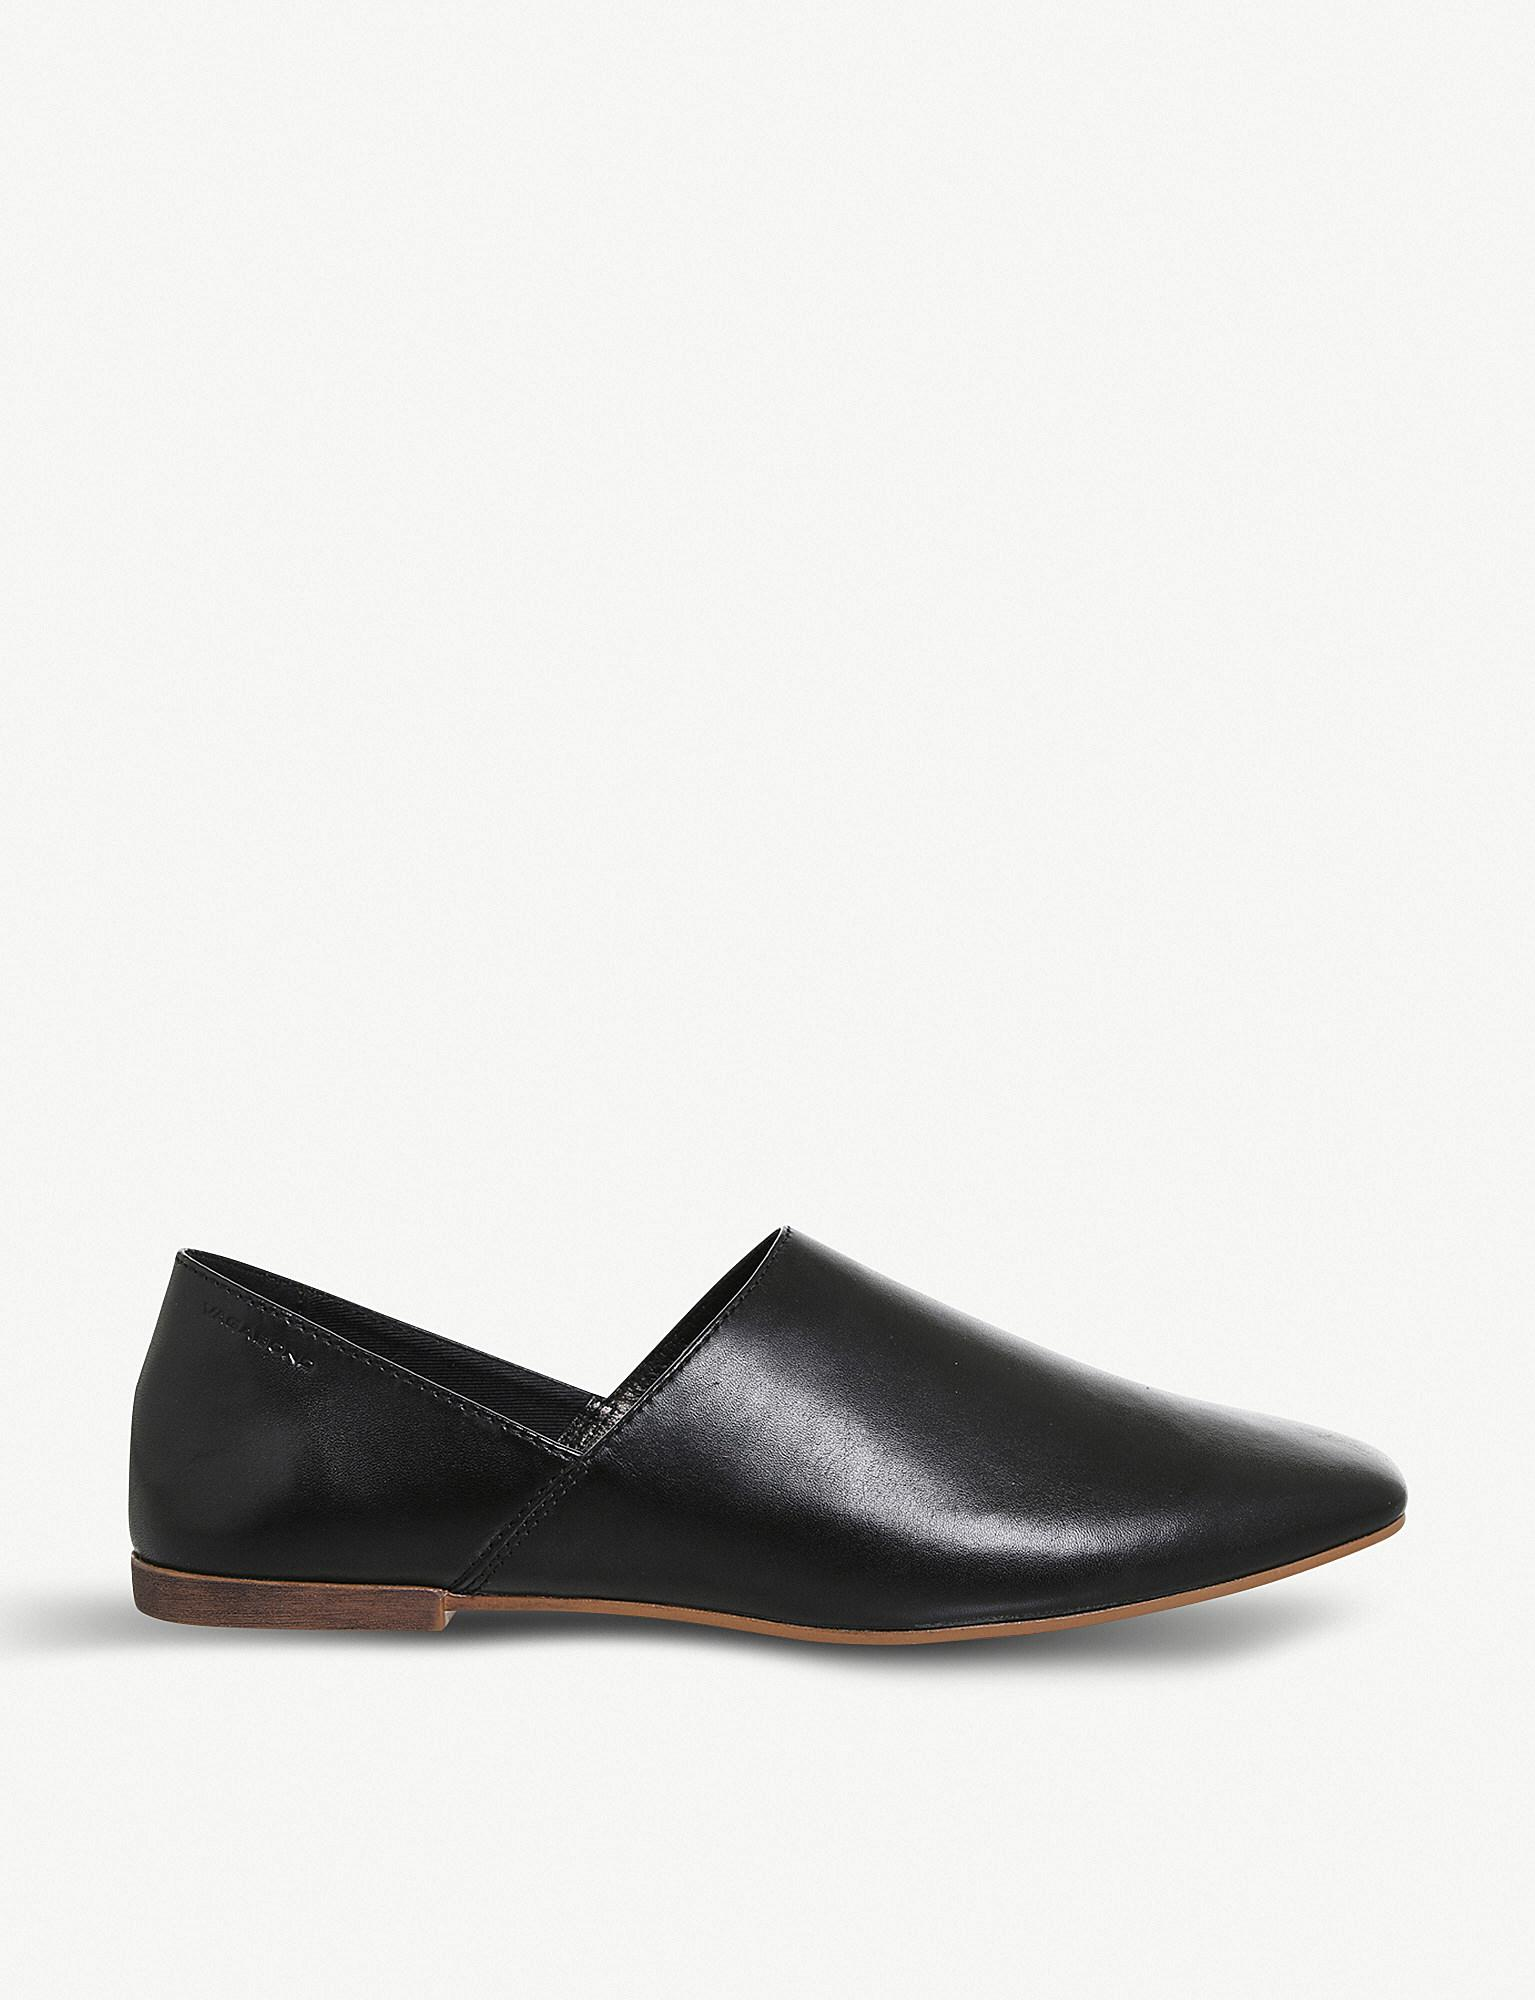 Shoes Black Vagabond In Ayden Lyst Leather UpqjLVGzMS